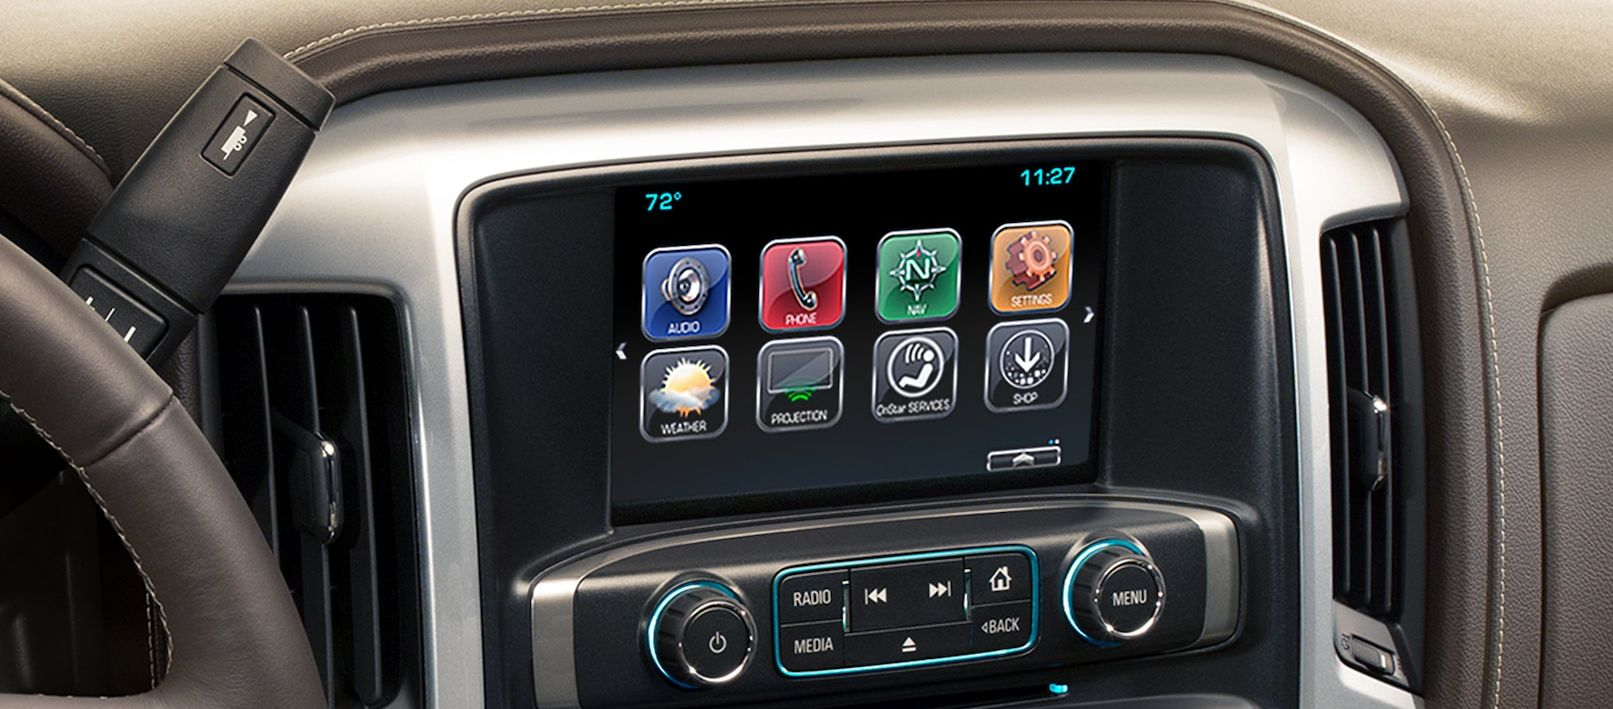 2019 Chevrolet Silverado 1500 Touchscreen